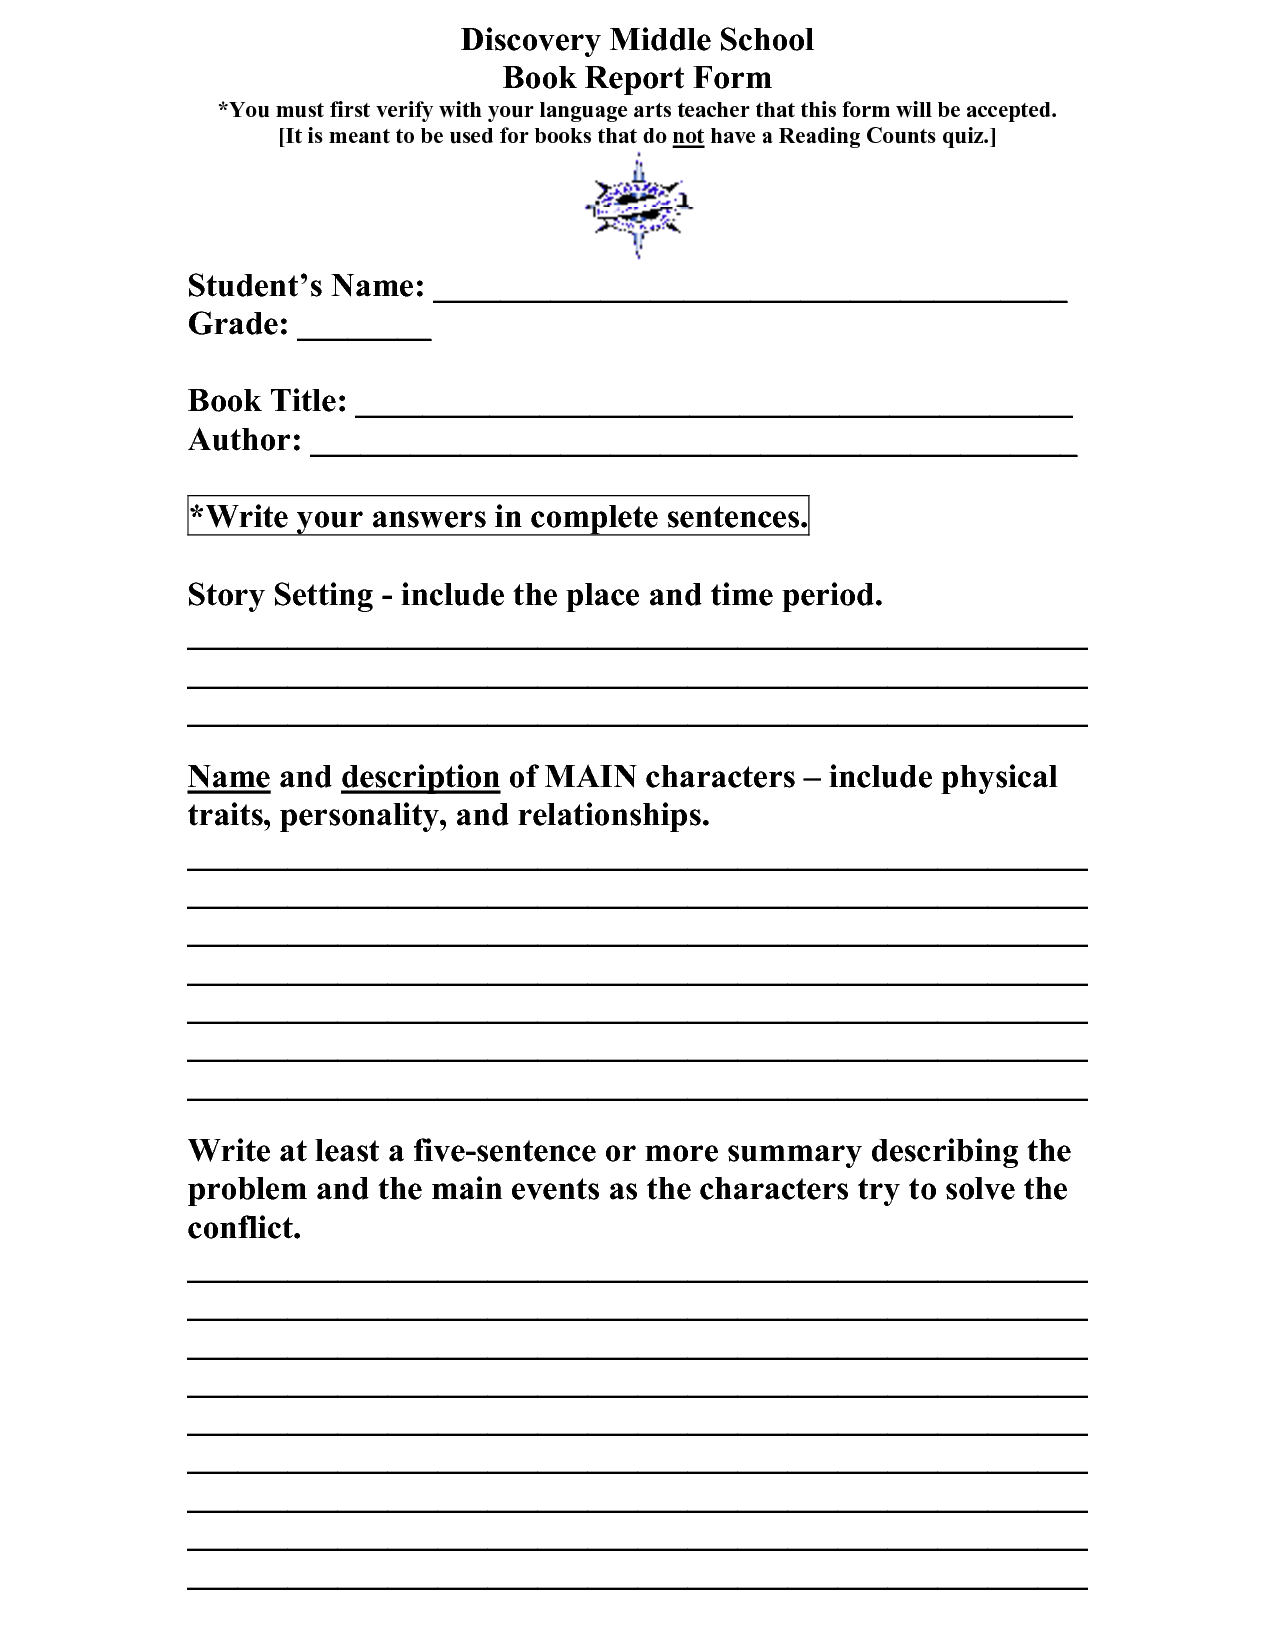 high school book report template pdf